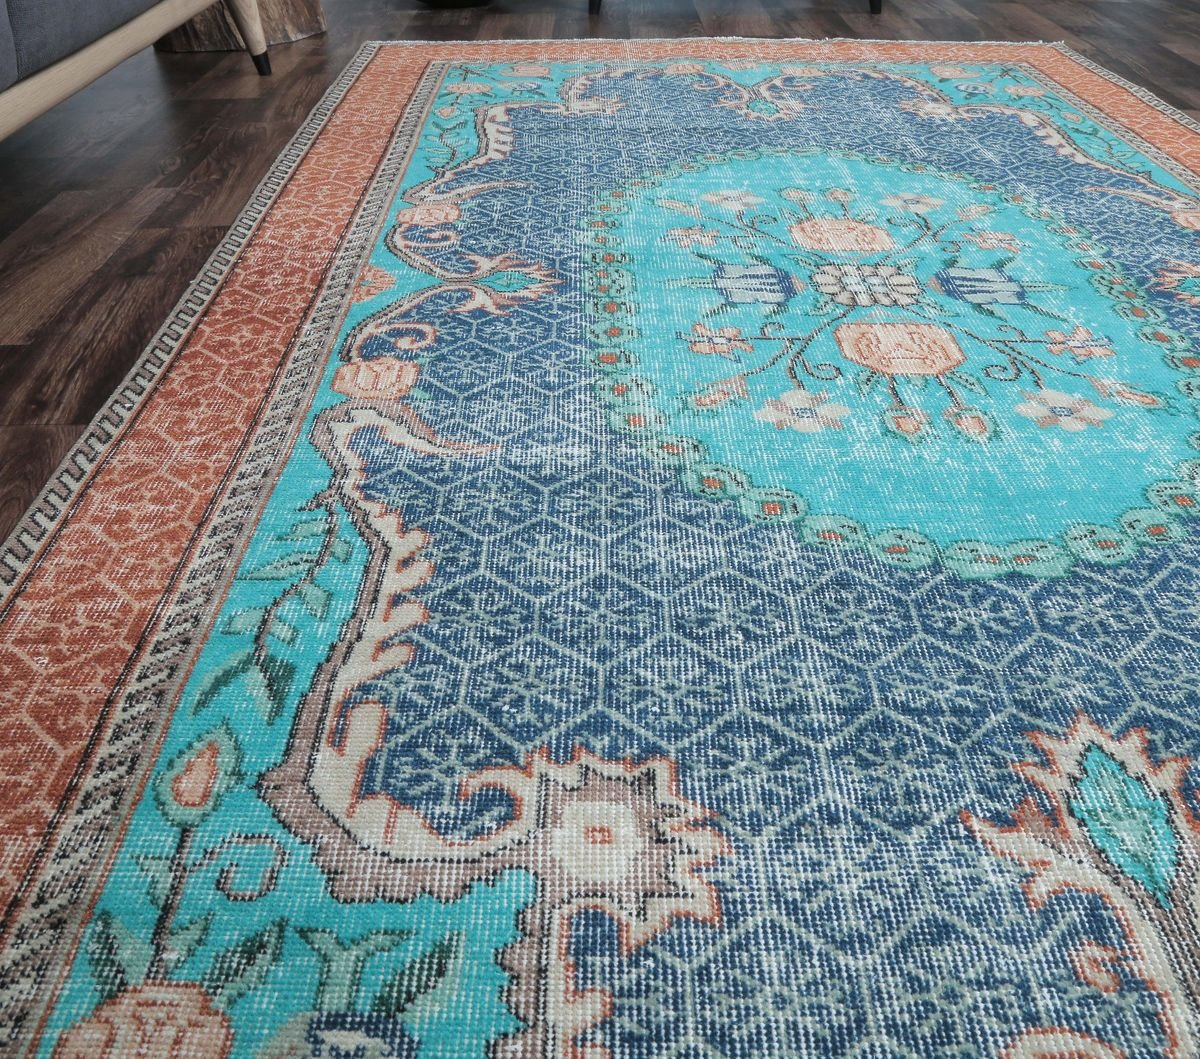 5x8 Vintage Turkish Oushak Handmade Blue Teal Wool Rug For Sale At Pamono